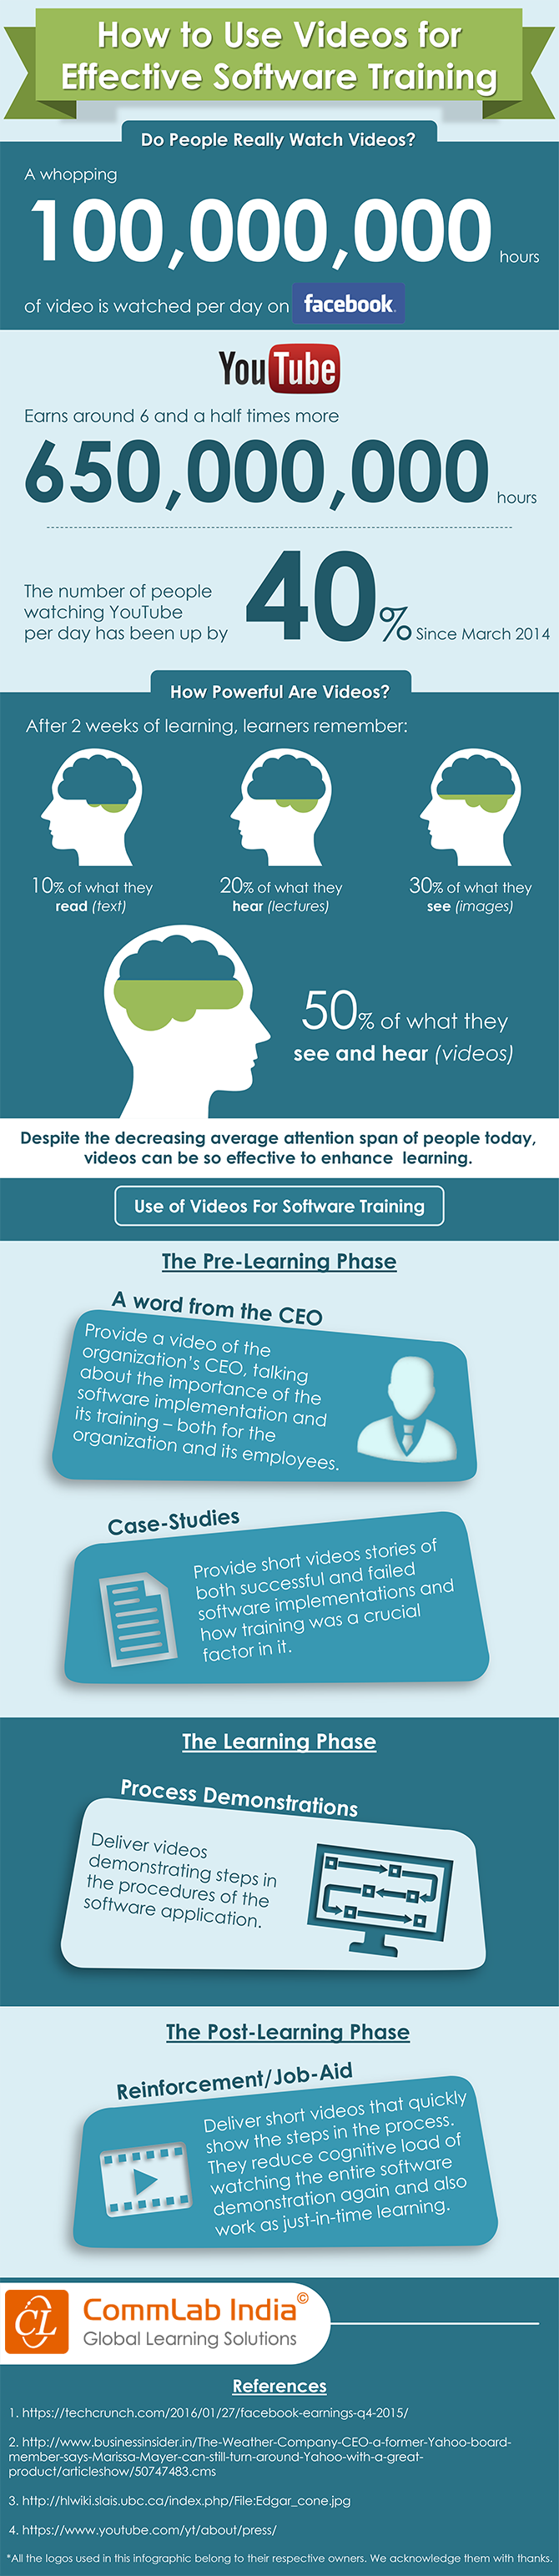 How to Use Videos for Effective Software Training [Infographic]